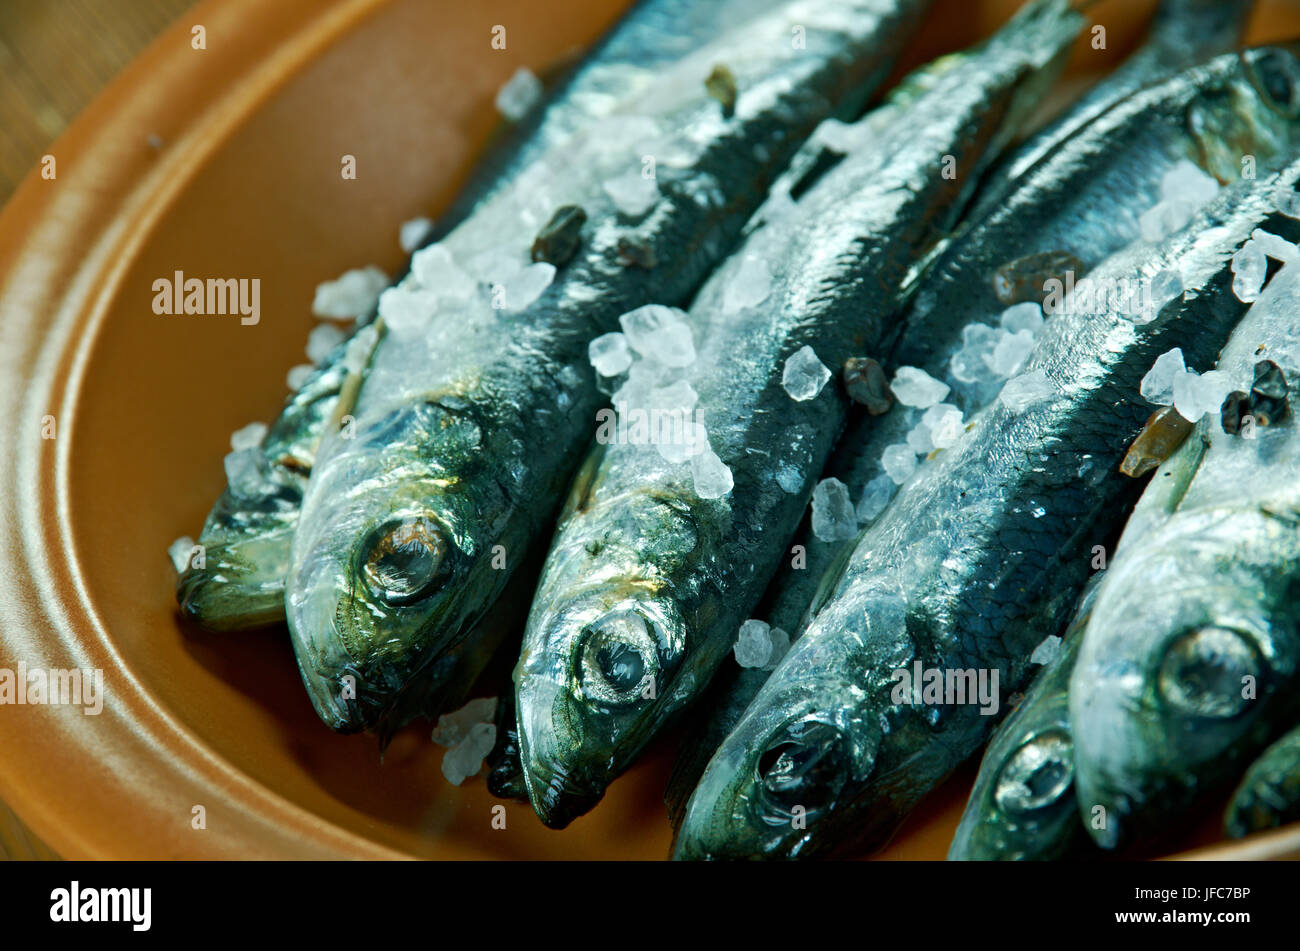 Surströmming Australia Surstromming Stock Photos And Surstromming Stock Images Alamy